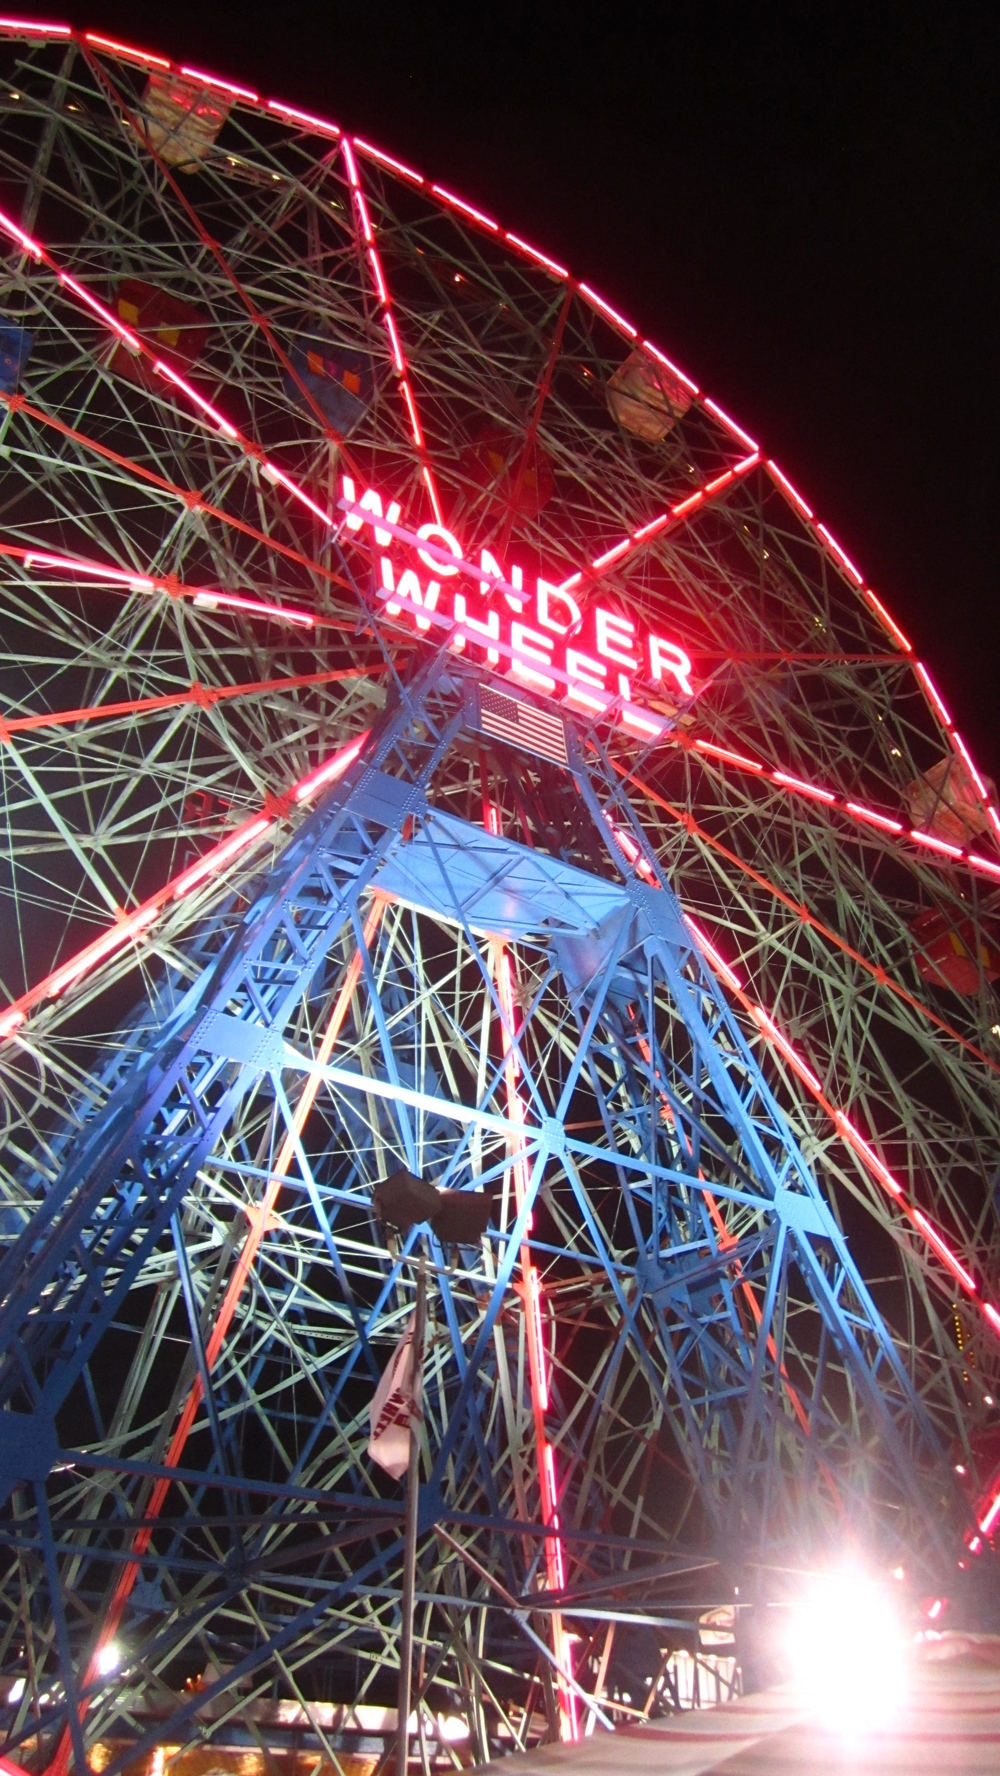 Behold the glory of The Wonder Wheel